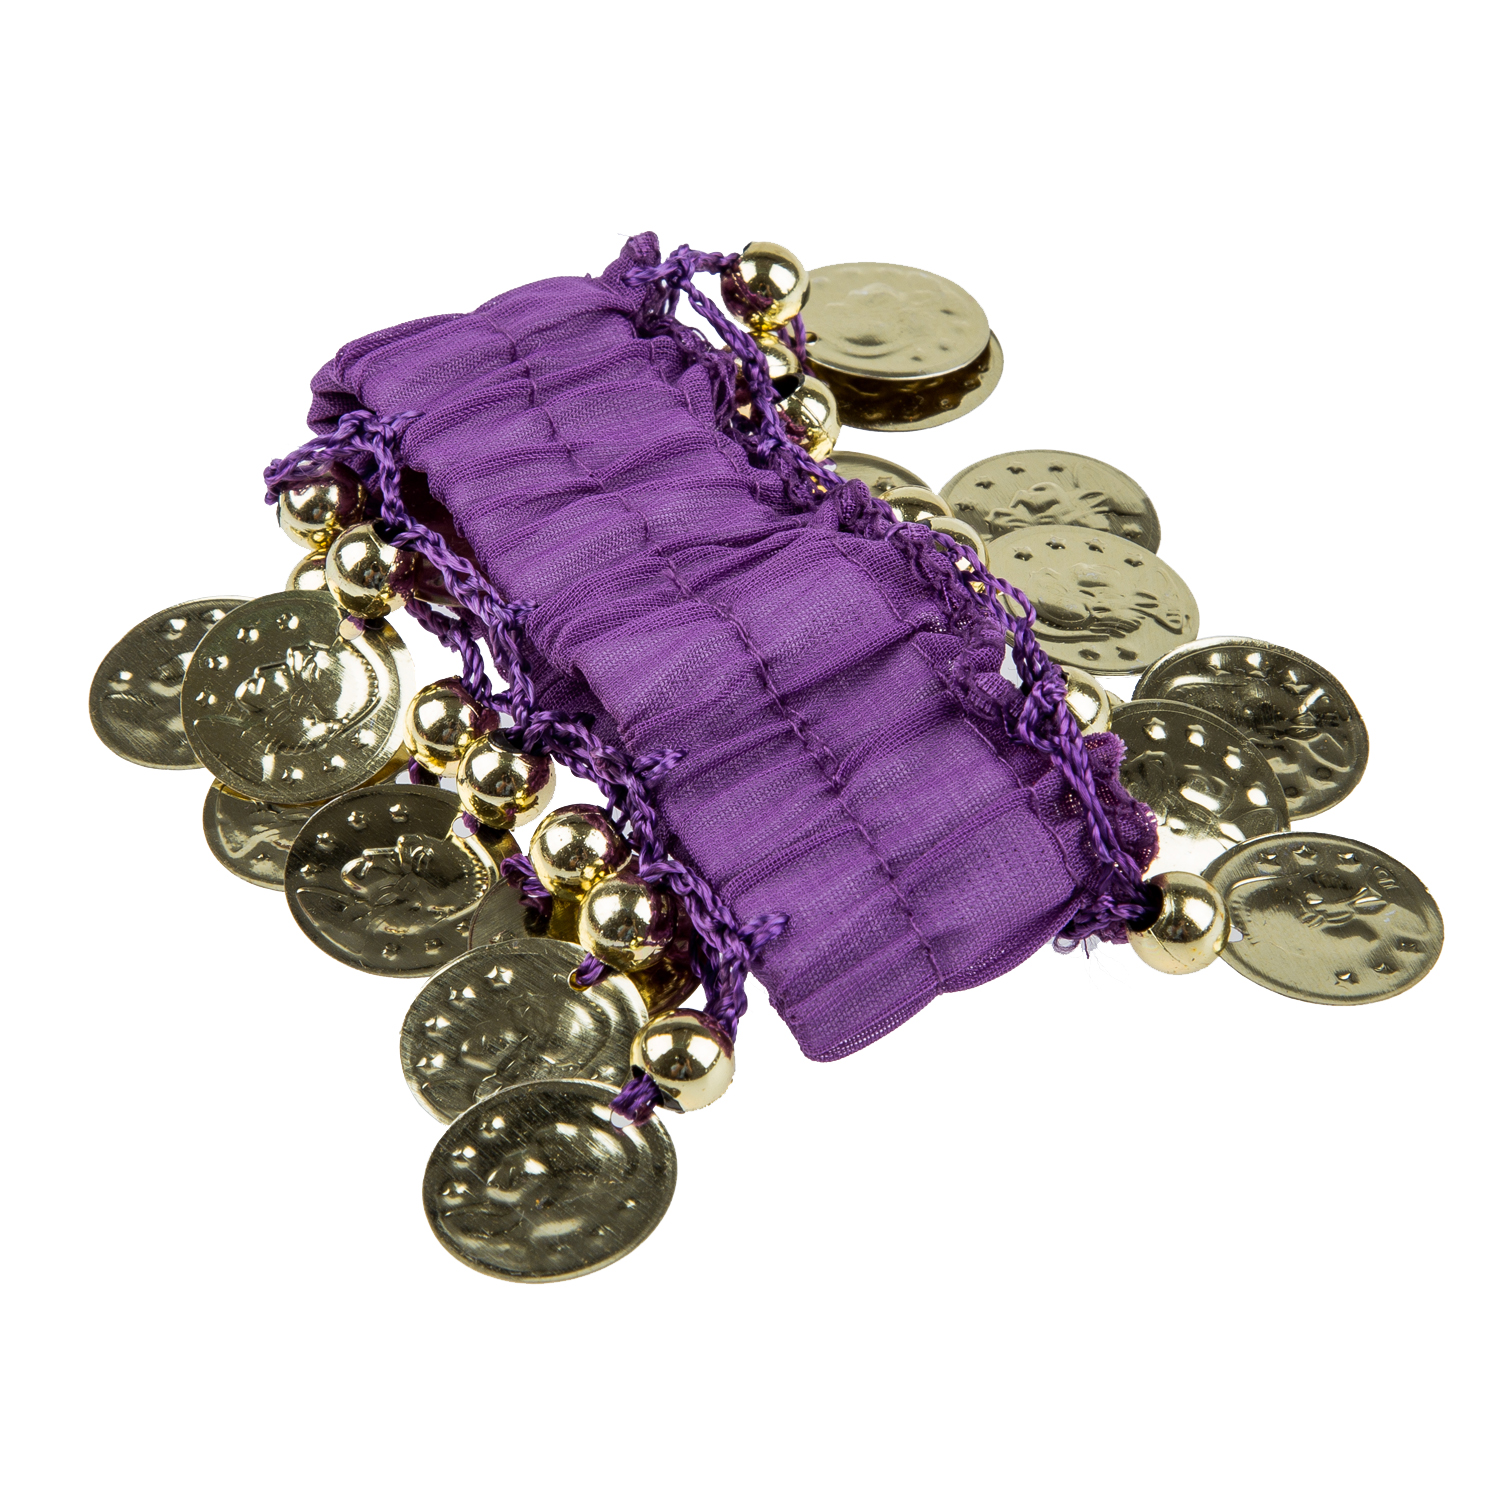 1 Pair Belly Dance Wear Bracelets Wrist Ankle Arm Cuffs Shiny Beads Gold Coins - purple